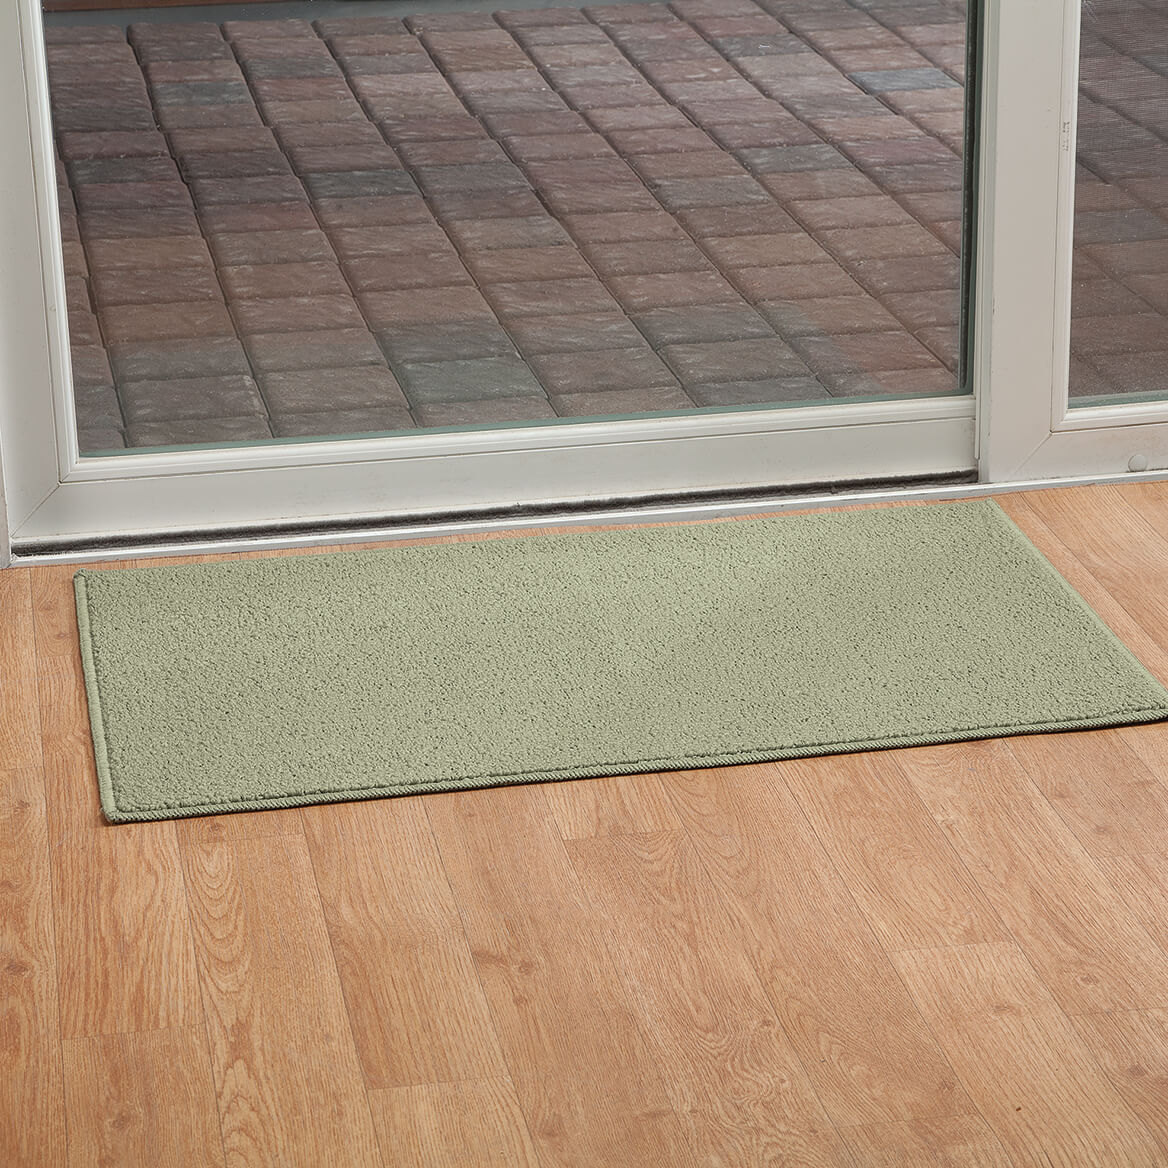 Rugby Solid Colored Rug by Oakridge®, Sage Set of 3-369099